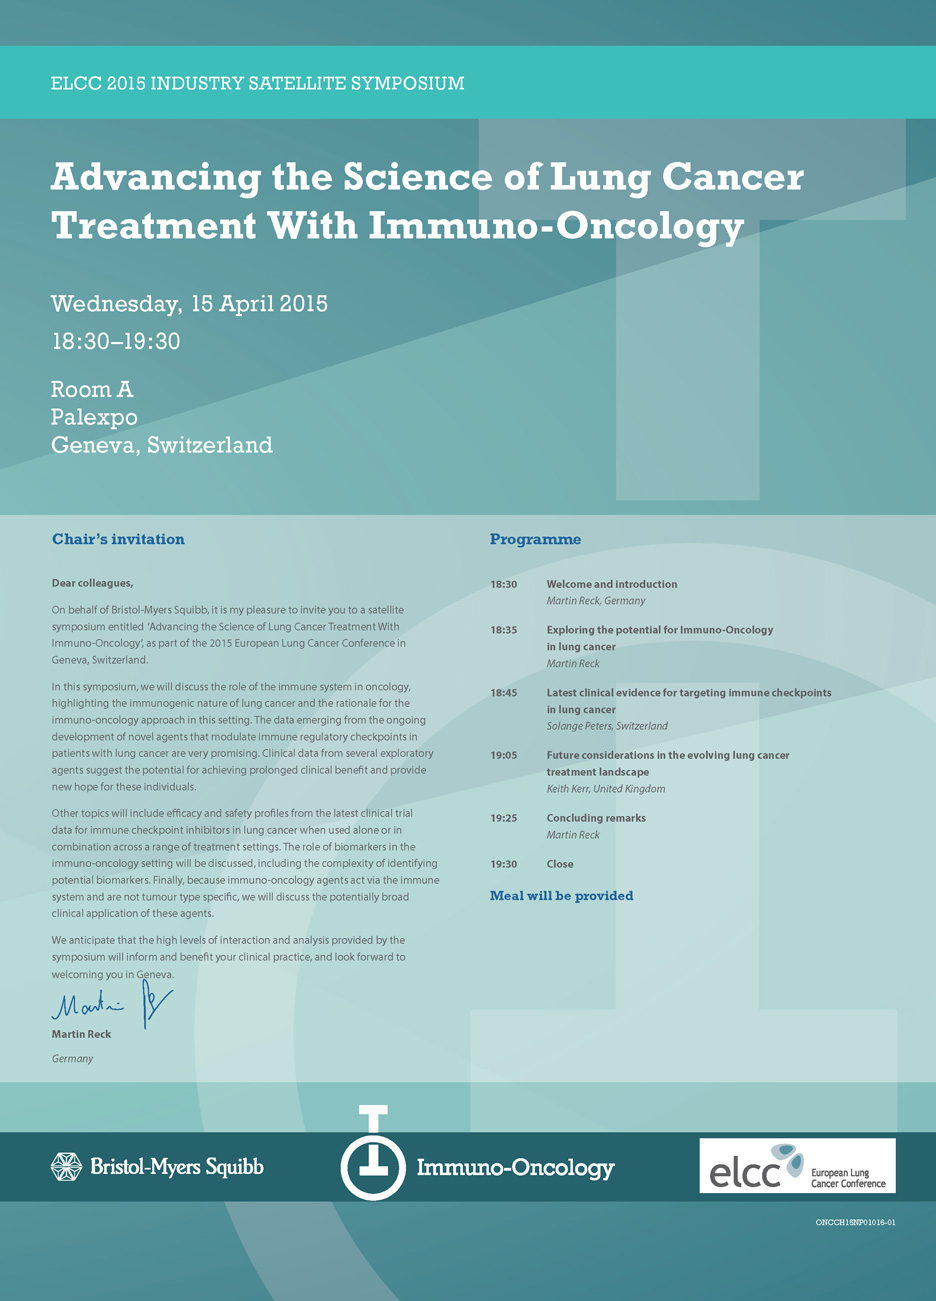 Advancing-the-Science-of-Lung-Cancer-Treatment-With-Immuno-Oncology